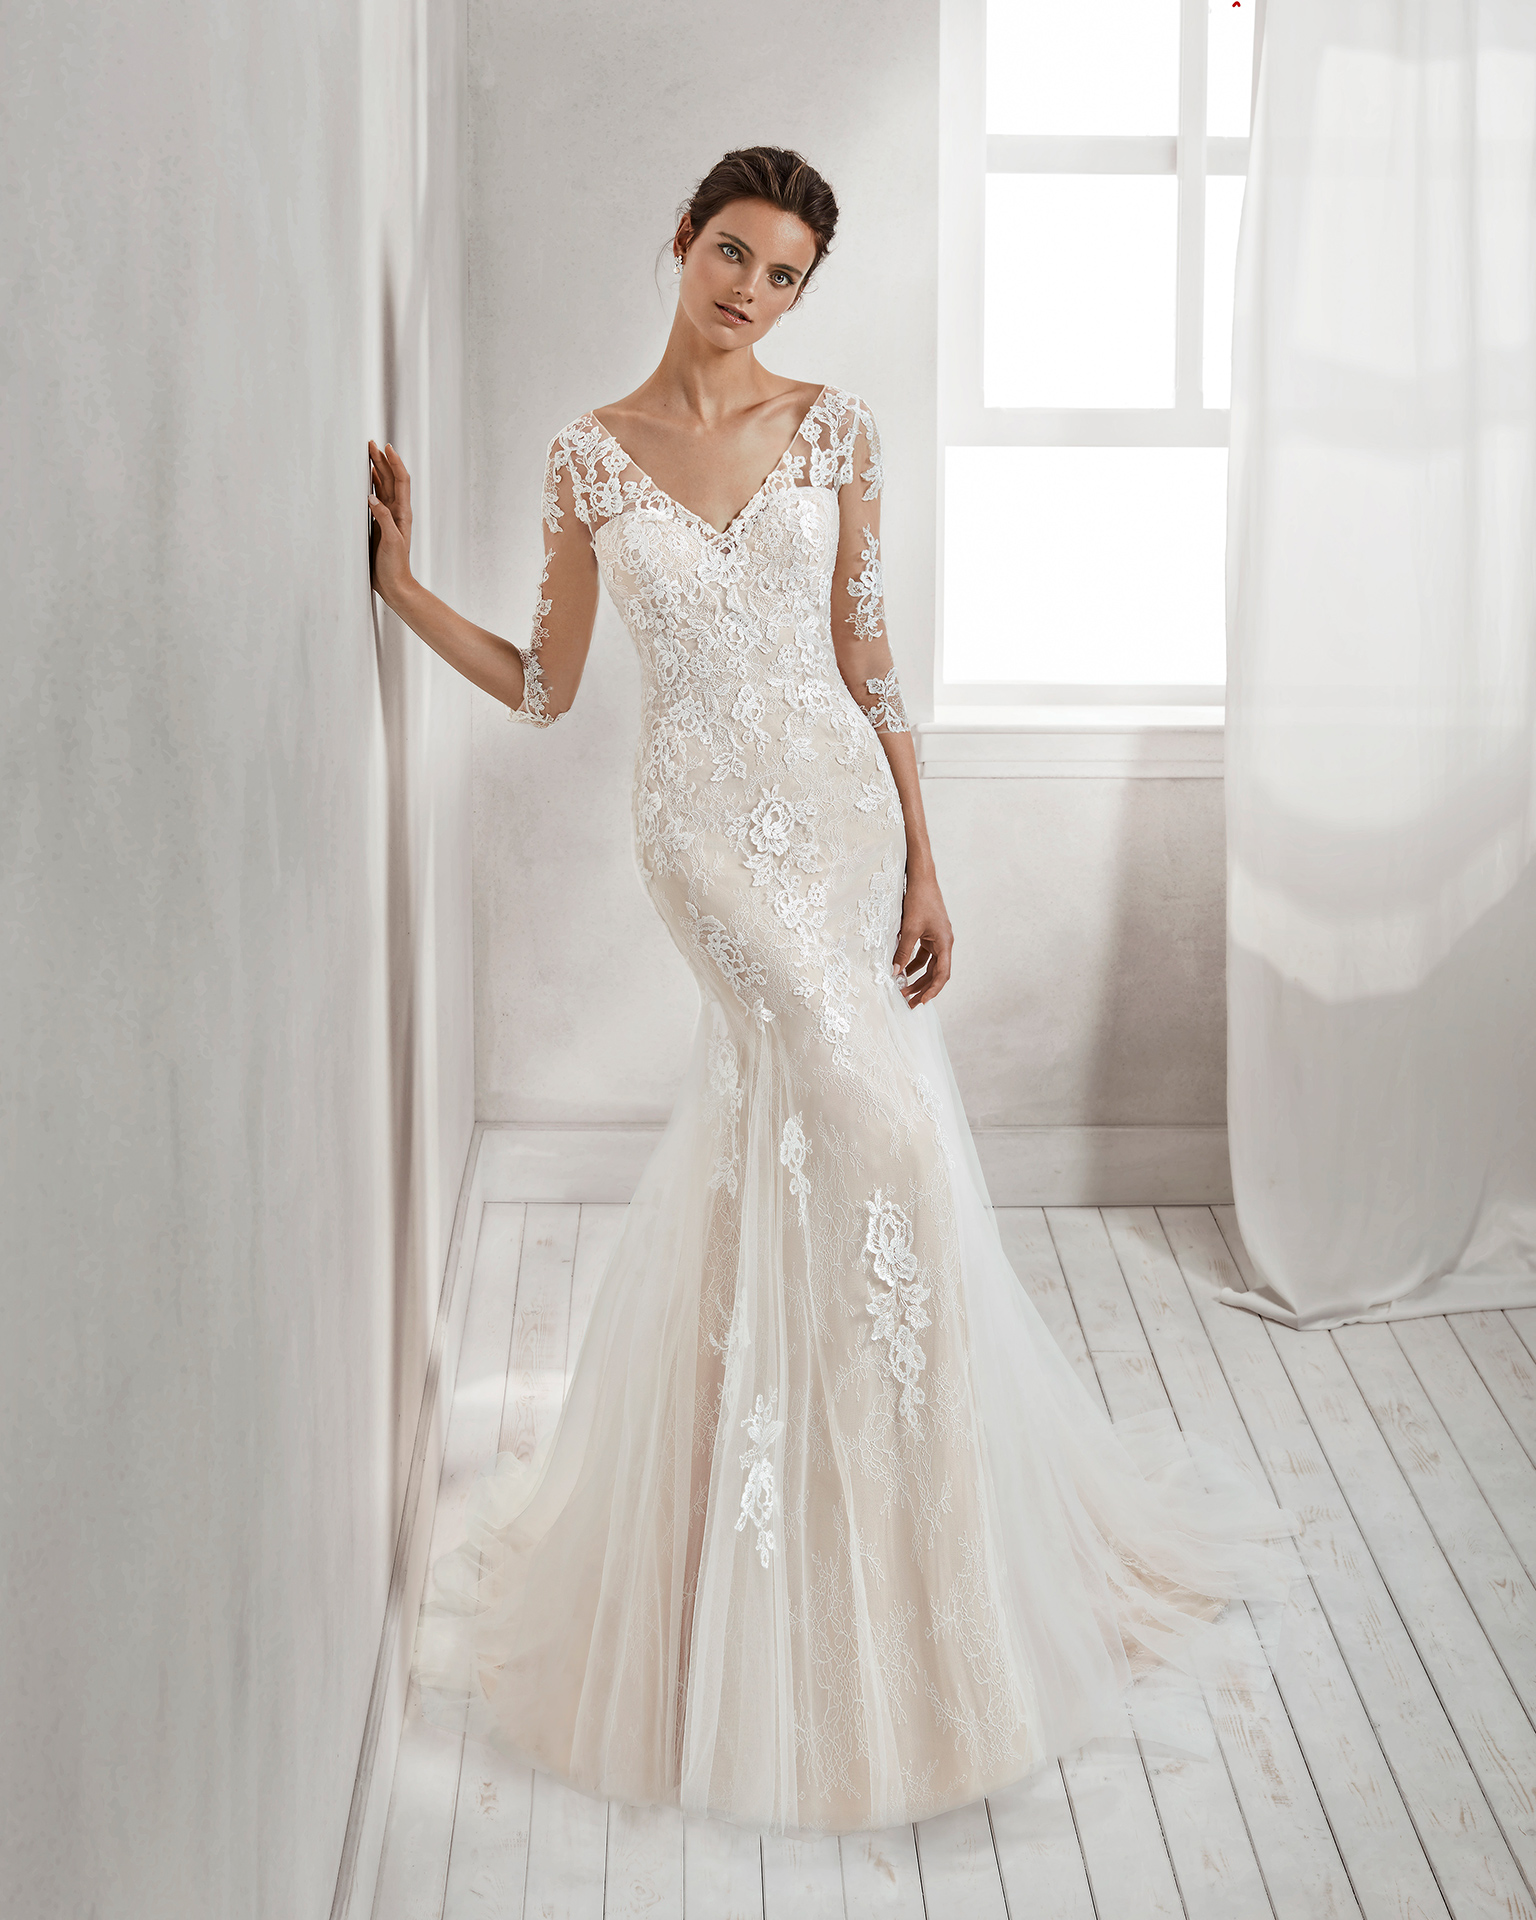 Mermaid-style beaded lace wedding dress with three-quarter sleeves, V-neckline, low back and tulle overskirt, in nude and natural.